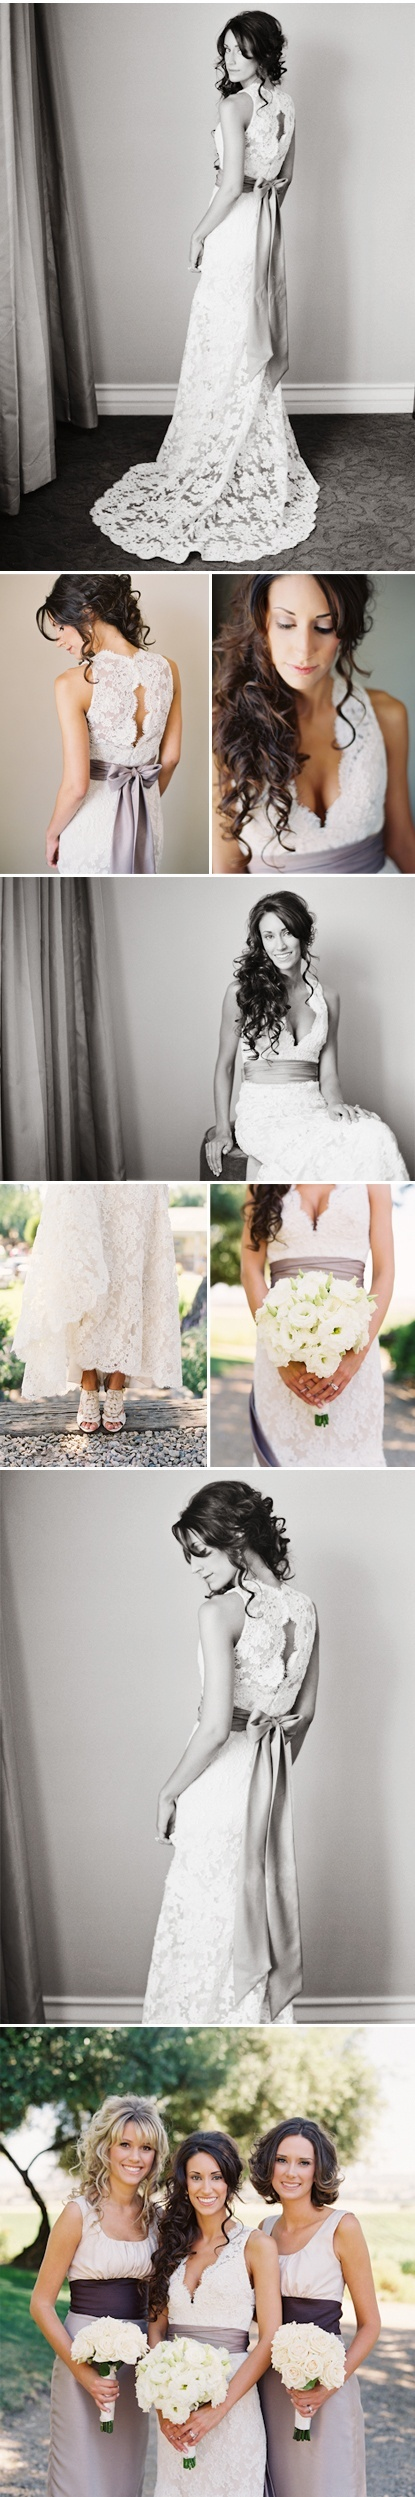 Low cut wedding dresses  A little low cut but other than that gorgeous  weddings